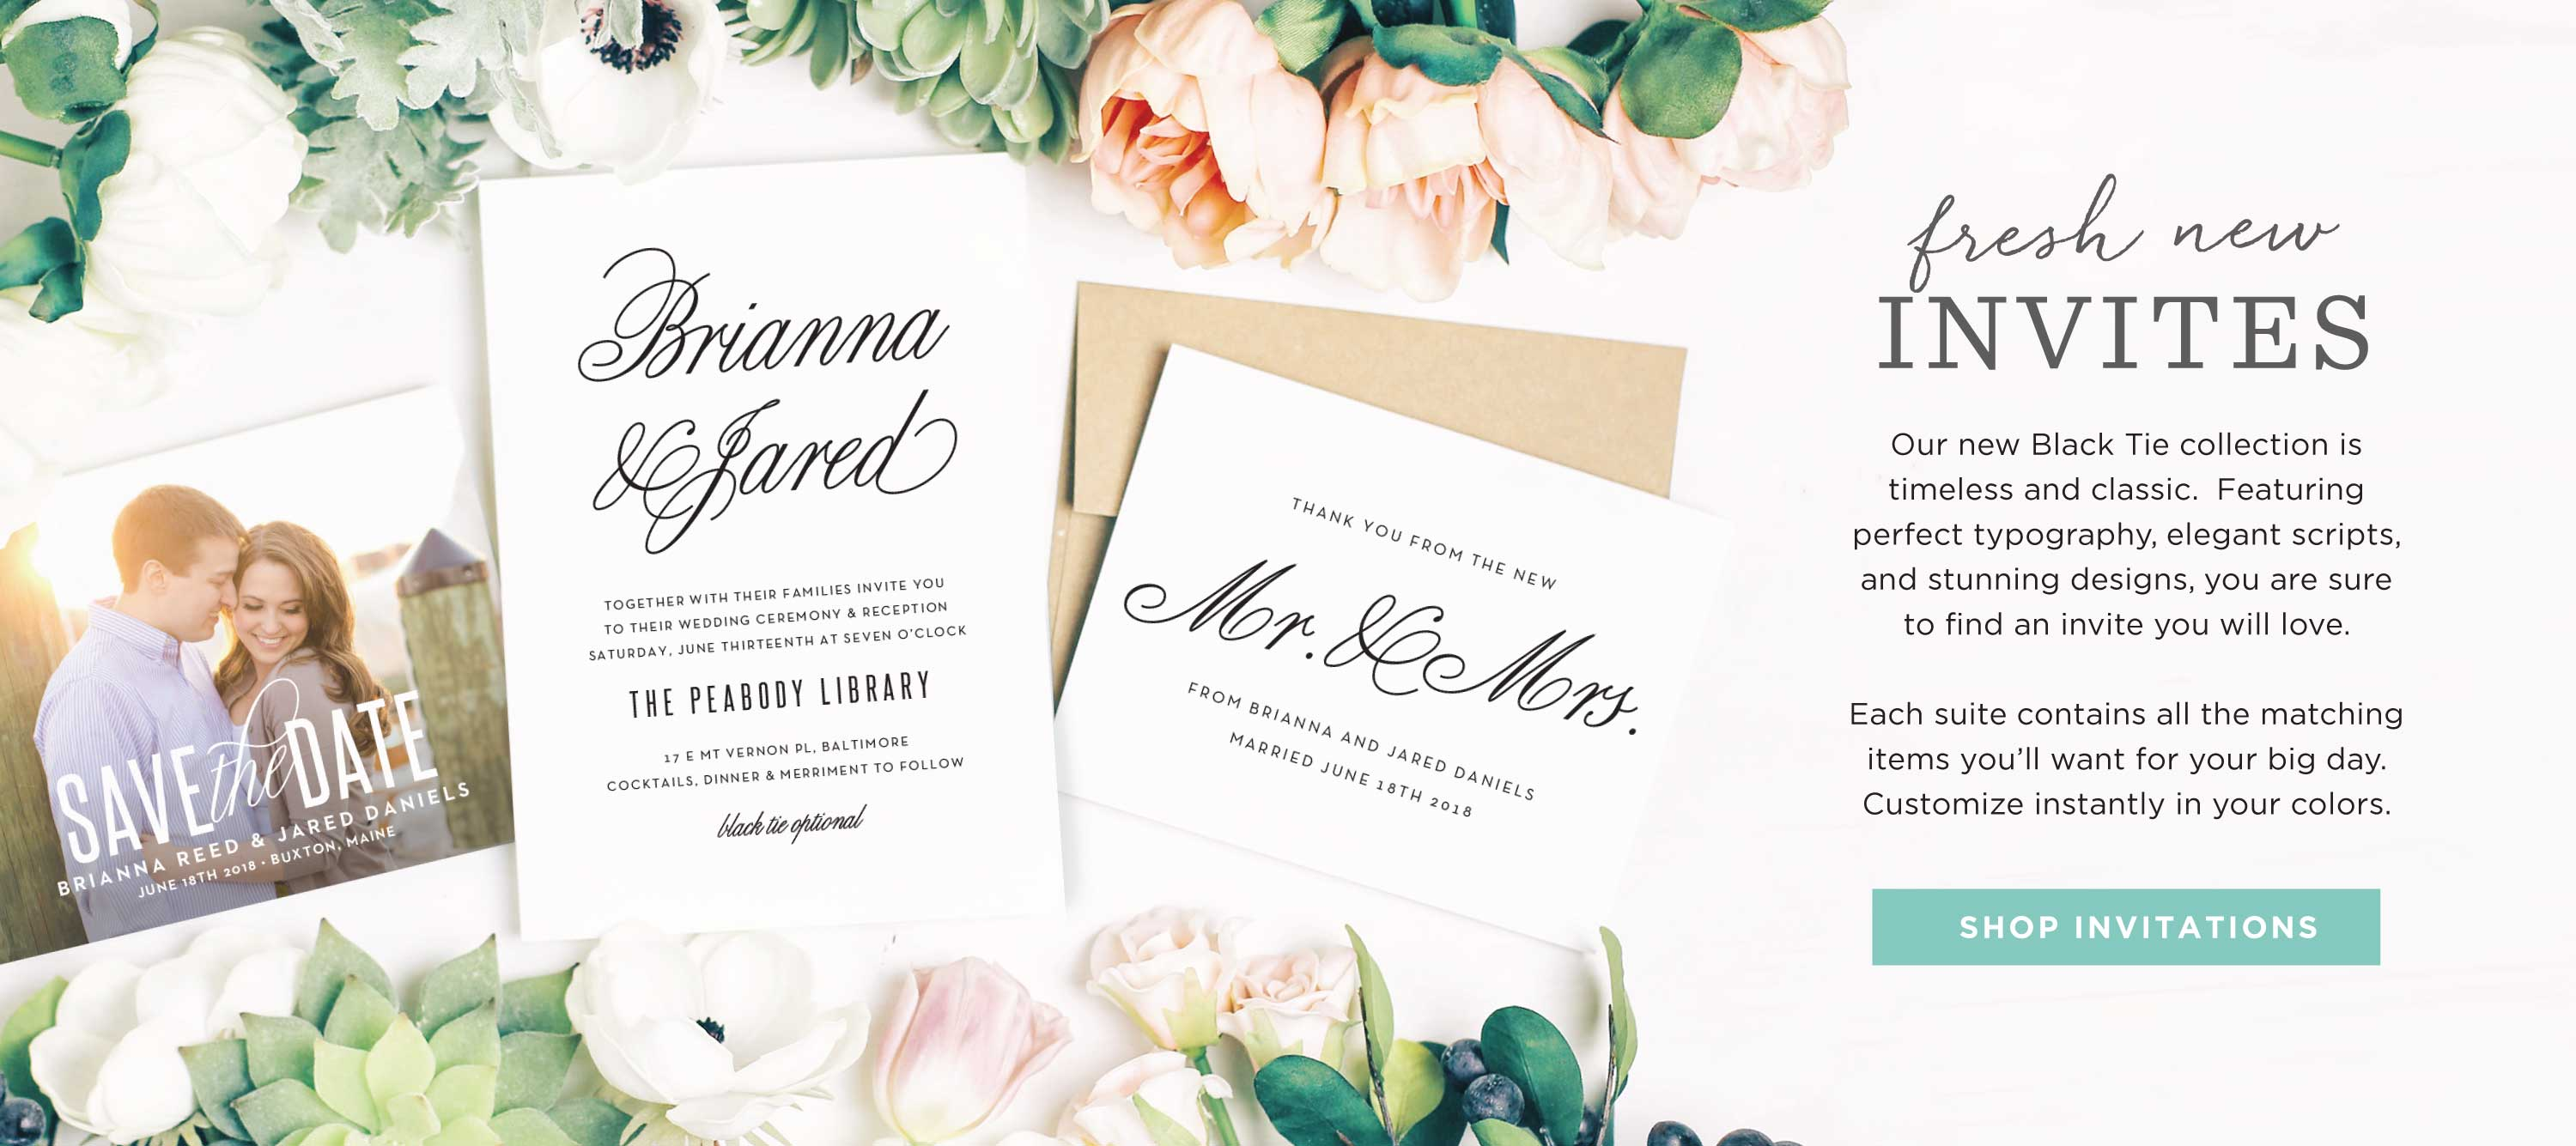 Timeless and Classic Wedding Invitations by Basic Invite